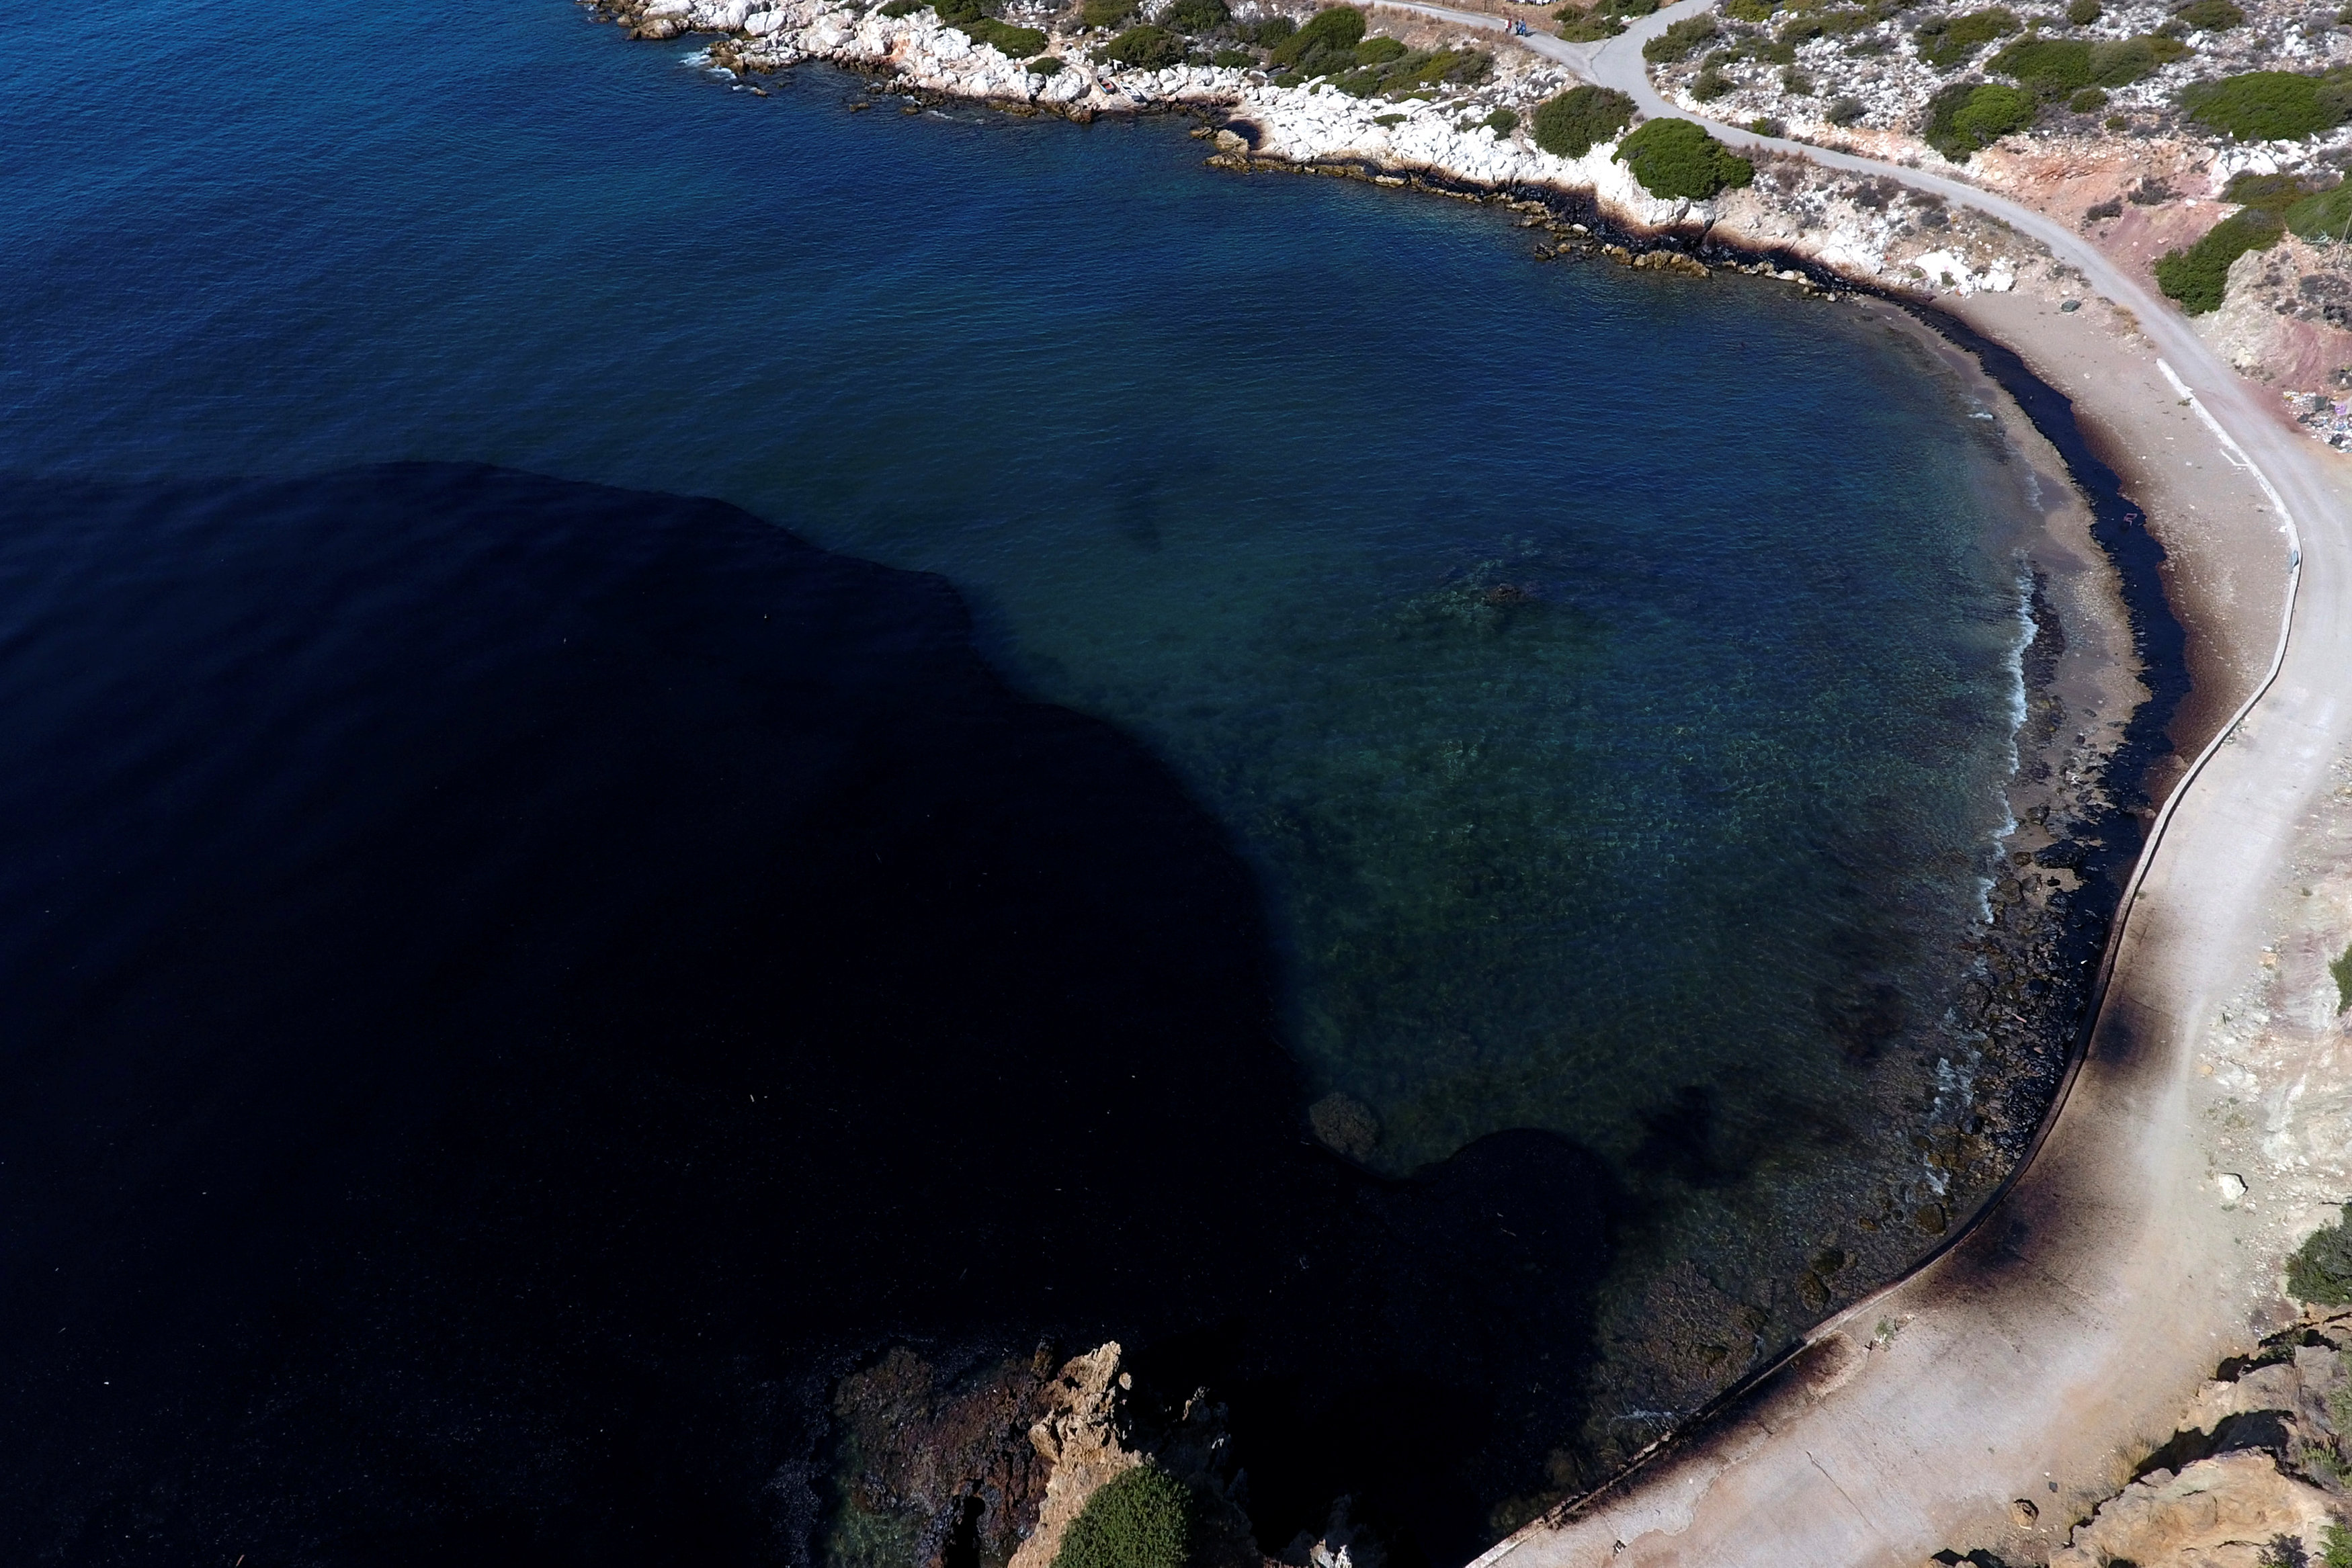 2017 09 12T140800Z 704141142 RC1E9791EF60 RTRMADP 3 GREECE ENVIRONMENT OIL SPILL